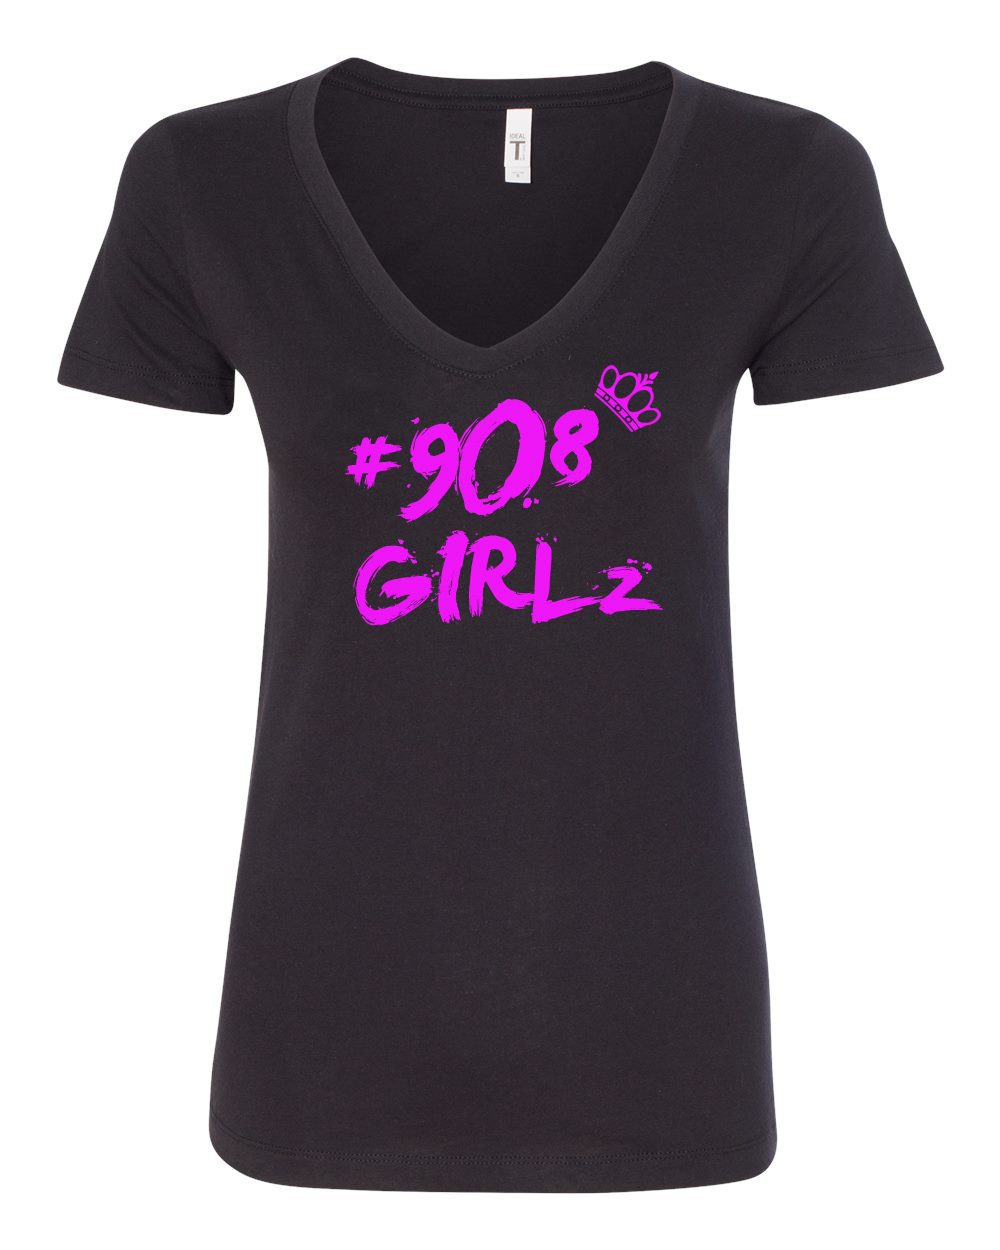 908 Girlz - (Black and pink vneck tee)